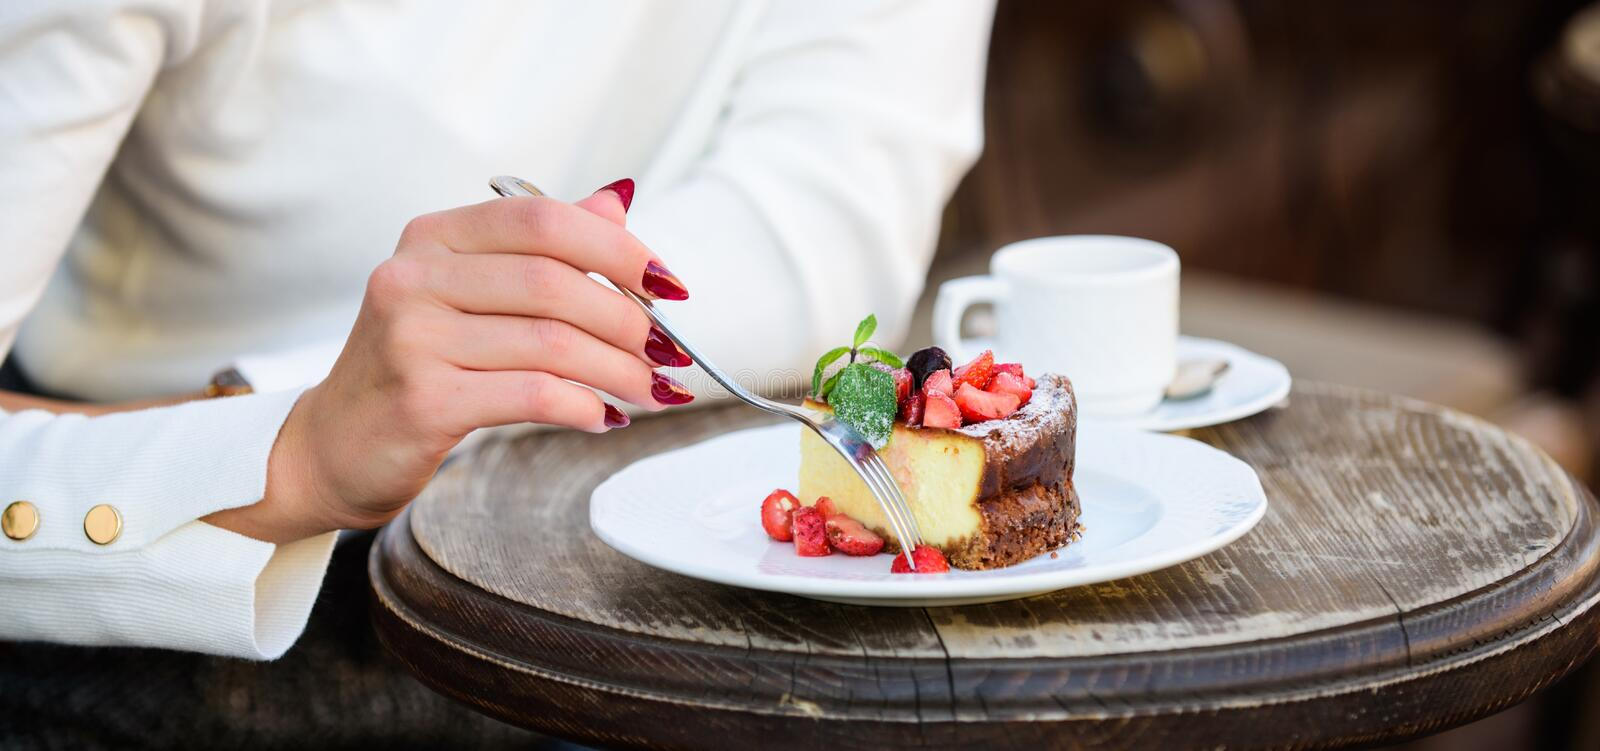 Dessert cake cup of coffee and female hand with fork close up. Piece of cake with red berry. Gourmet recipe food. Cake. Slice on white plate. Cake with cream royalty free stock photos